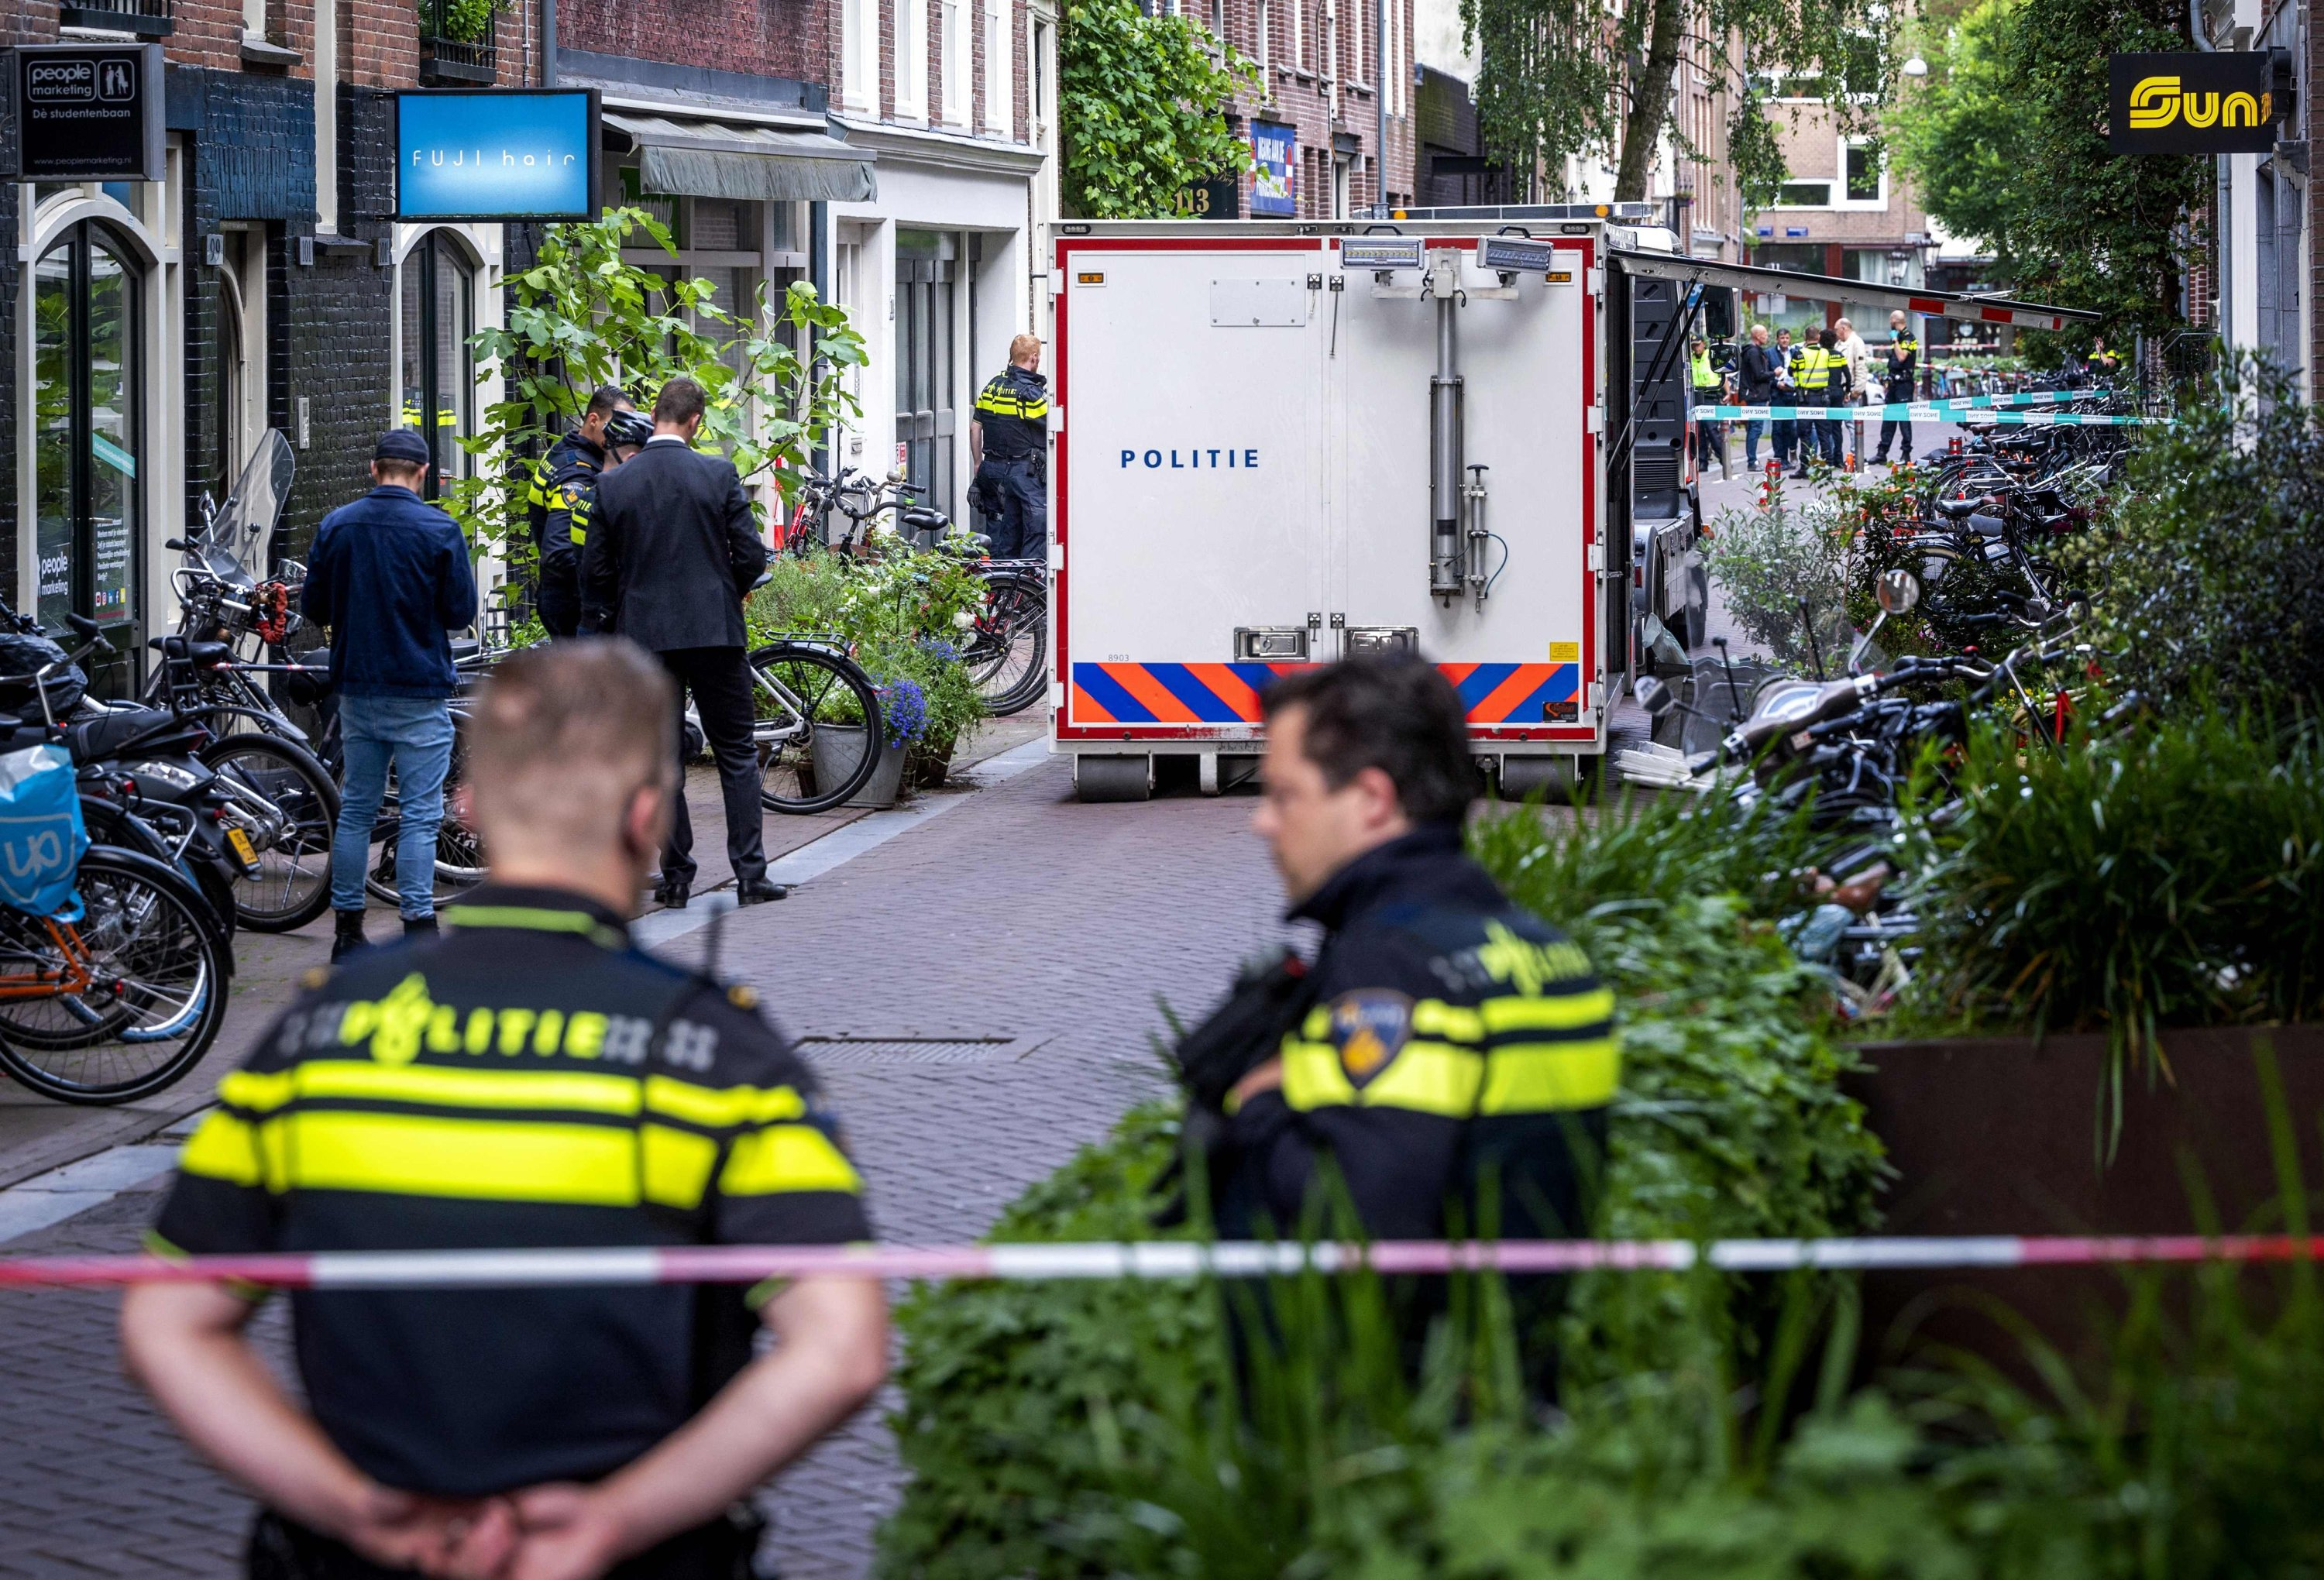 Police officers work at the site of an attack, during which a Dutch journalist specialized in crime, Peter R. de Vries, was seriously injured in a shooting in Amsterdam, the Netherlands, July 6, 2021. (AFP Photo)